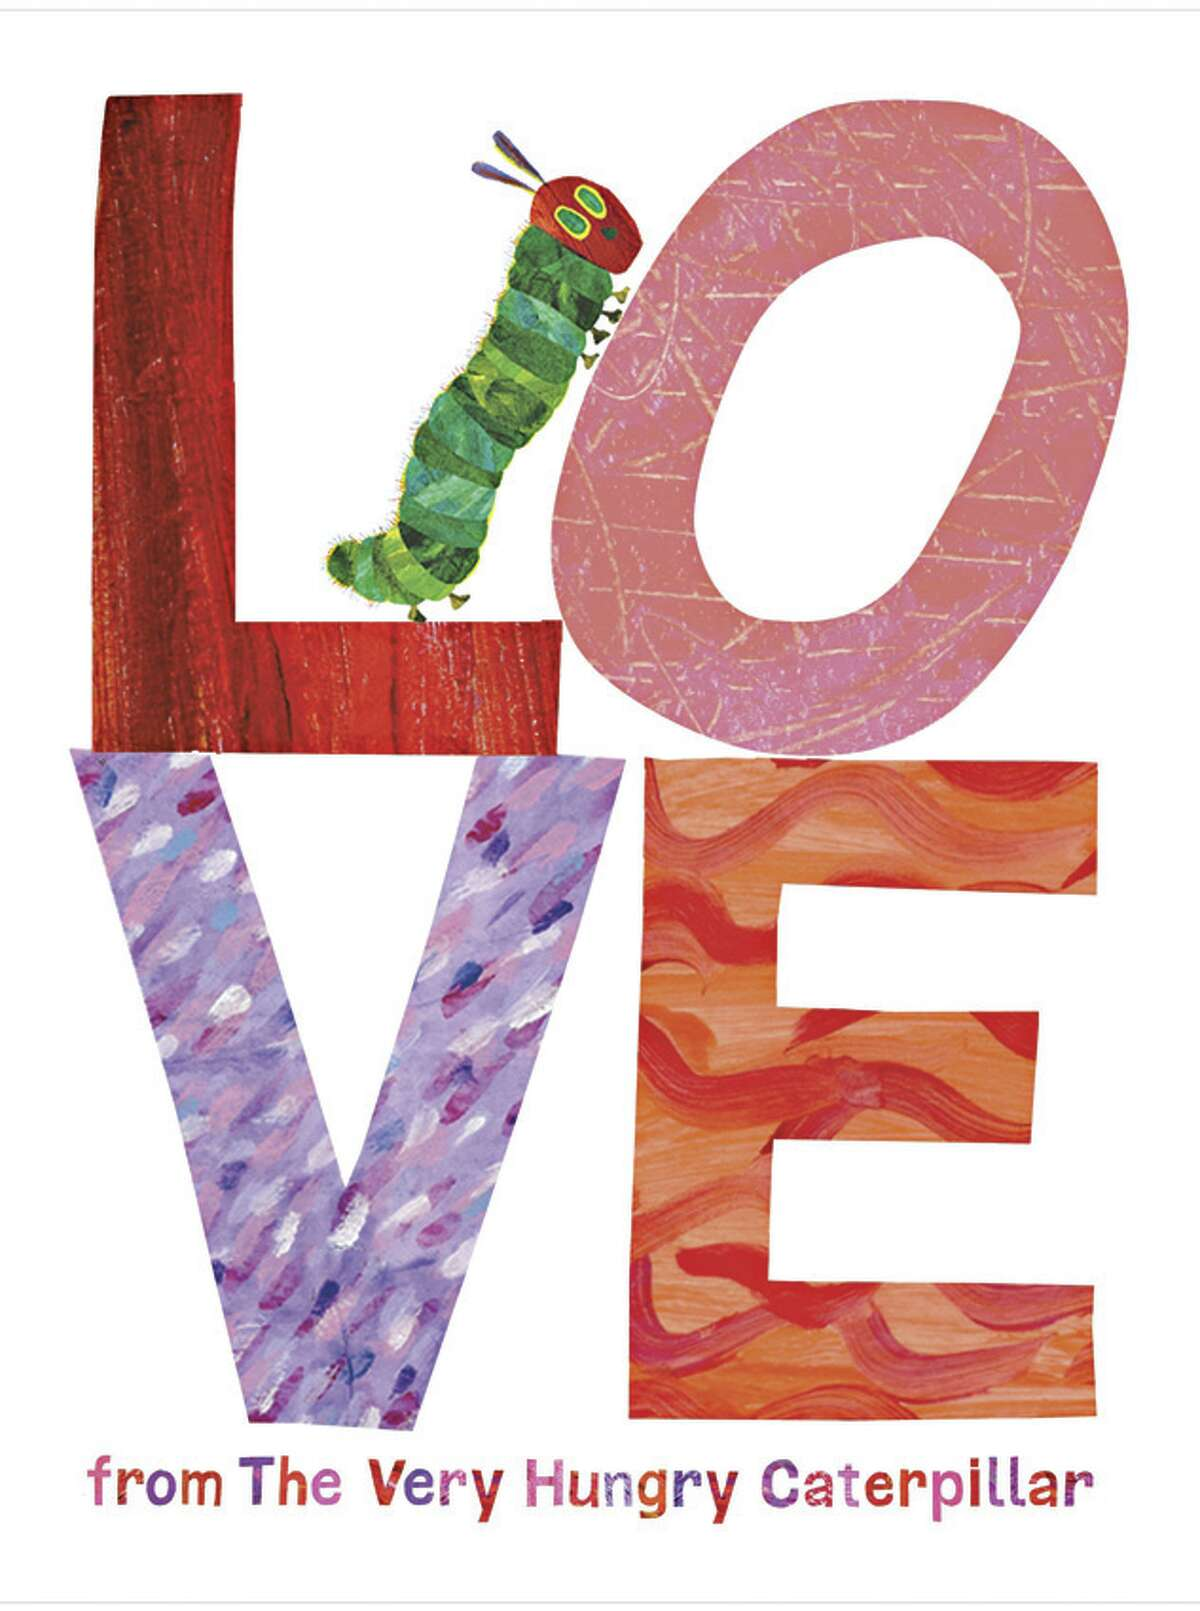 ?Love from the Very Hungry Caterpillar? by Eric Carle